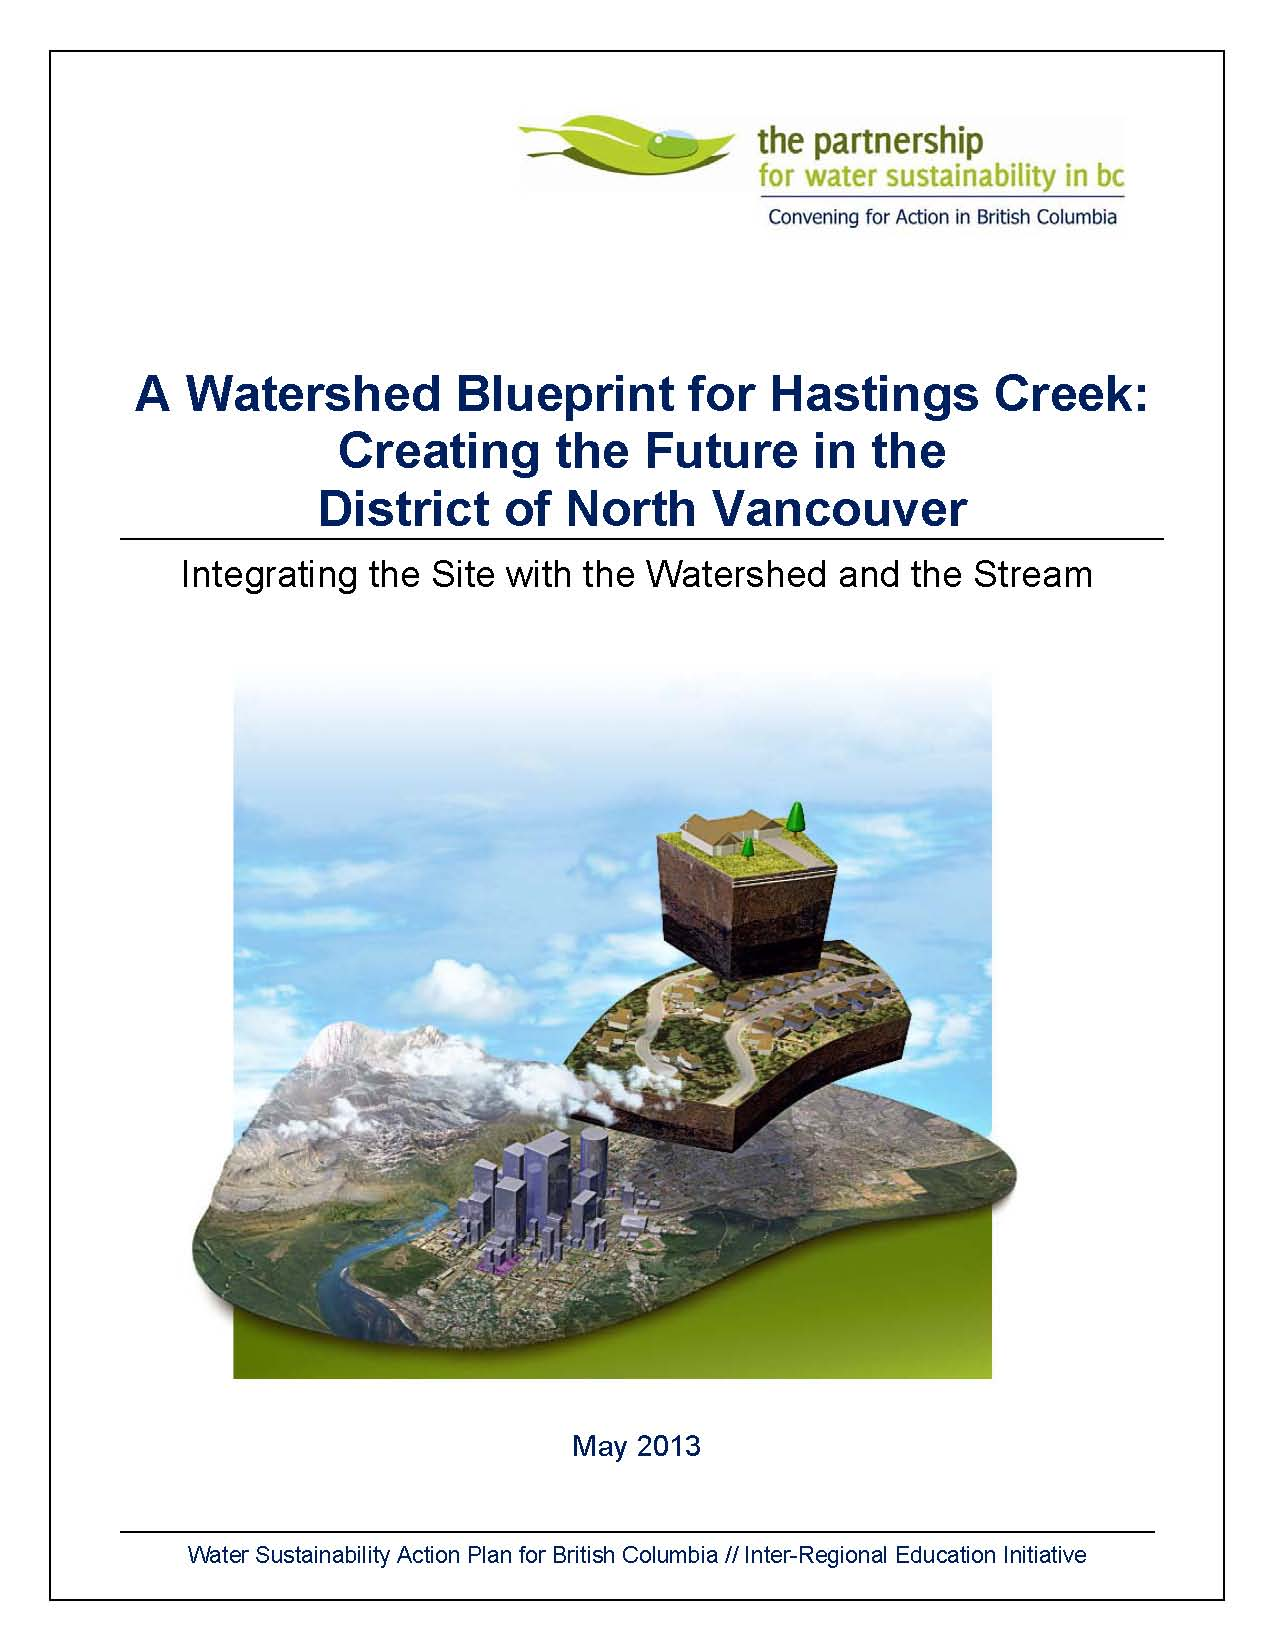 Hastings creek watershed blueprint much more than a report about the hastings creek story malvernweather Images